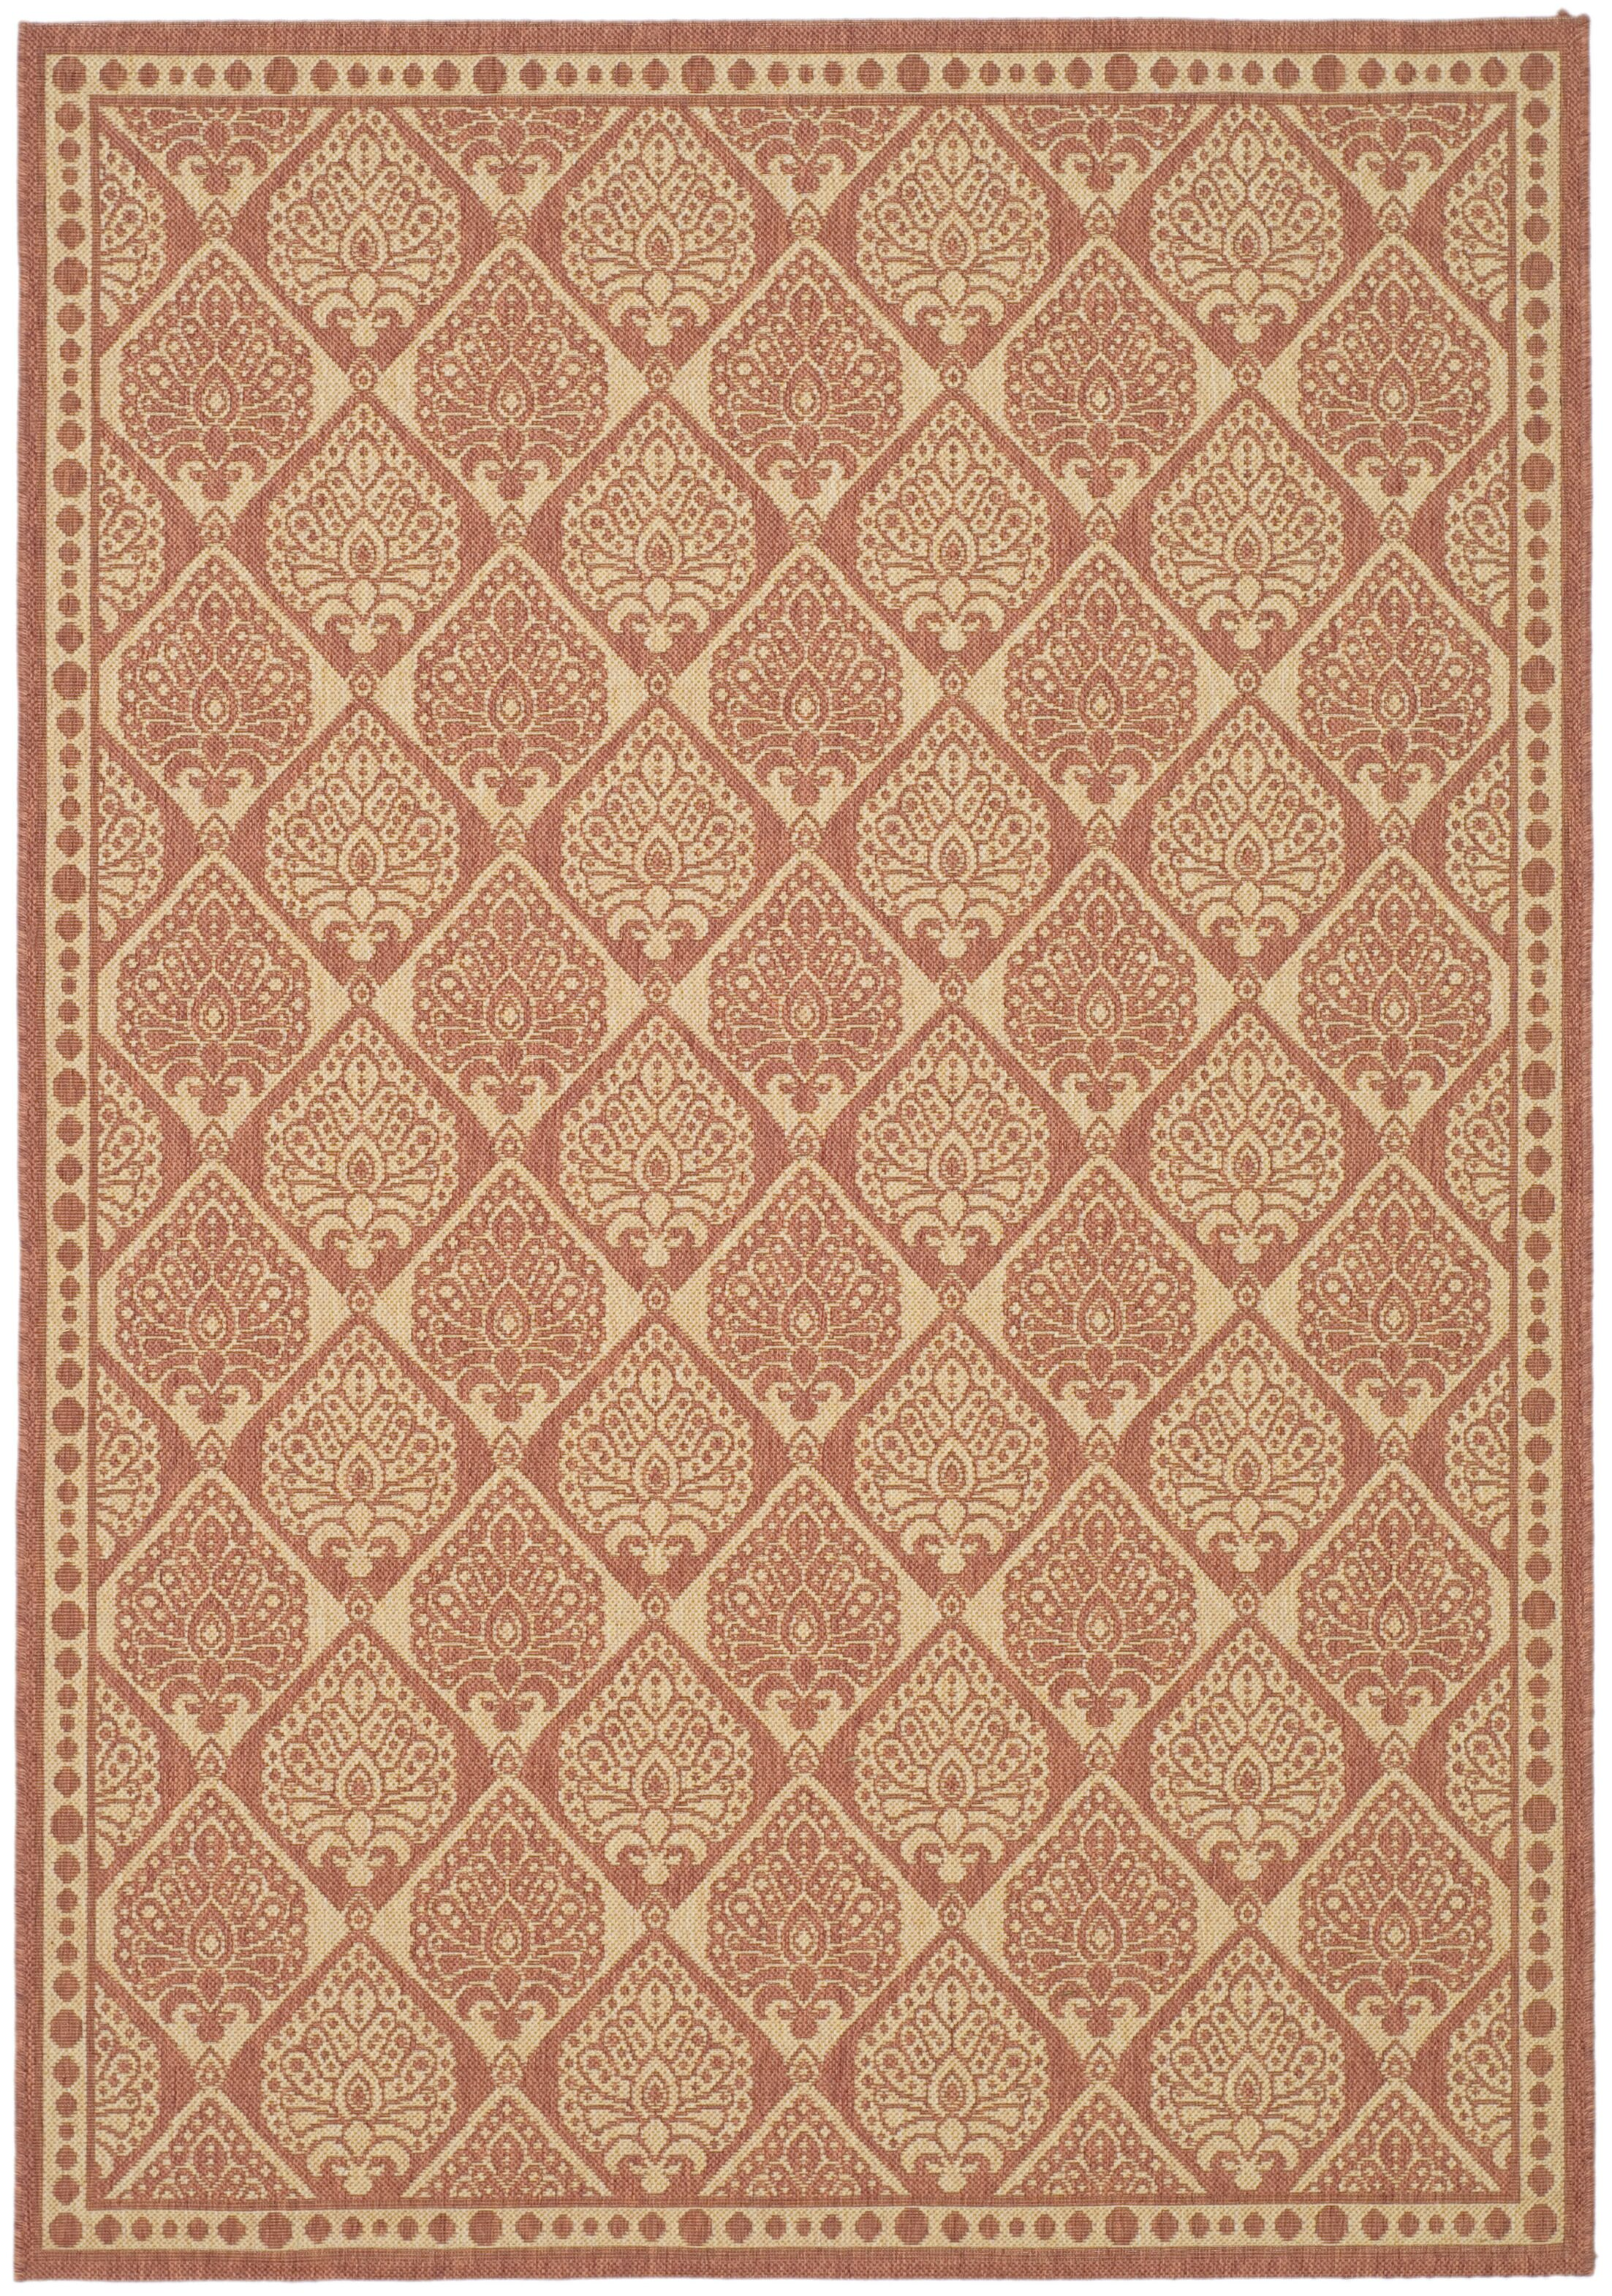 Romola Rust/Sand Outdoor Rug Rug Size: Rectangle 7'10